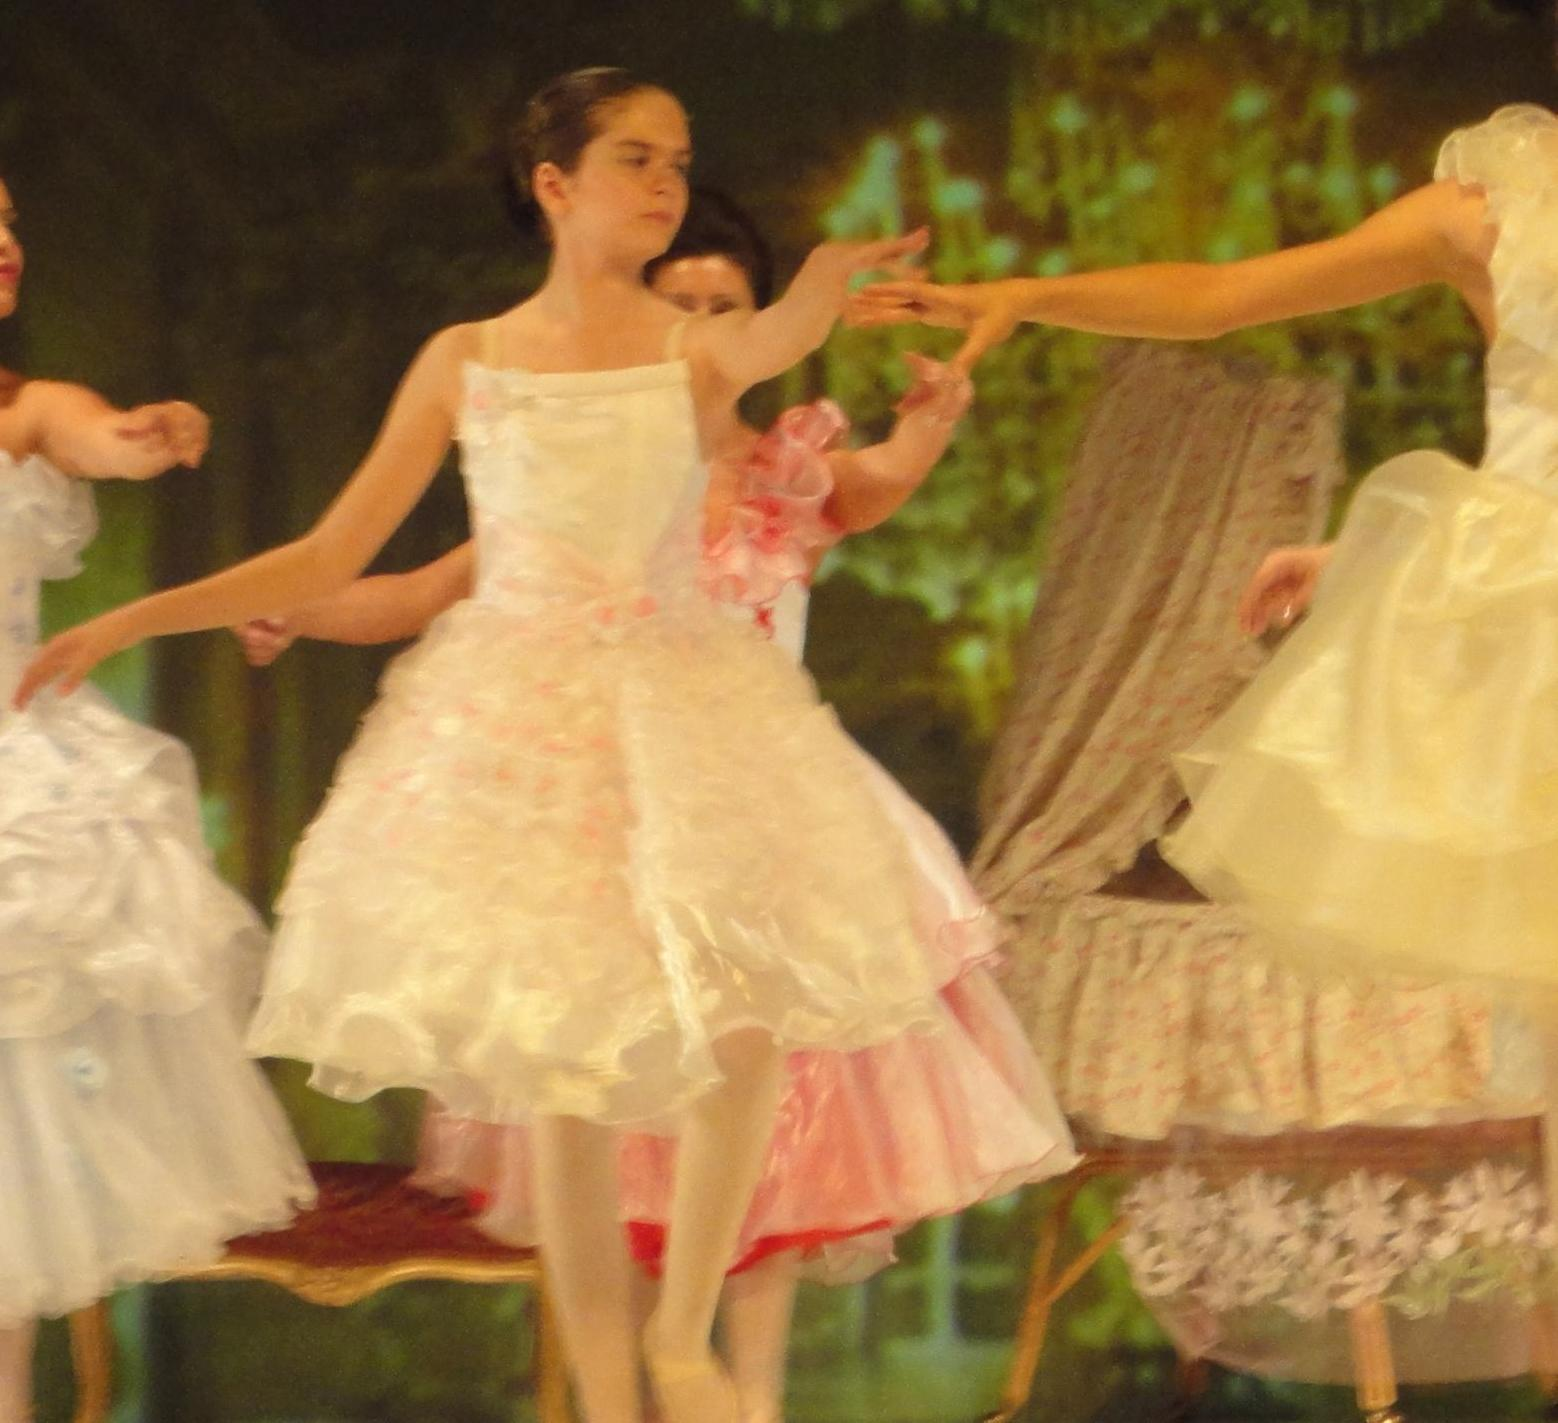 Danza 2011 - Balletto - La Bella Addormentata - Ballet - Sleeping Beauty - Dormiente - Dormant - Dance